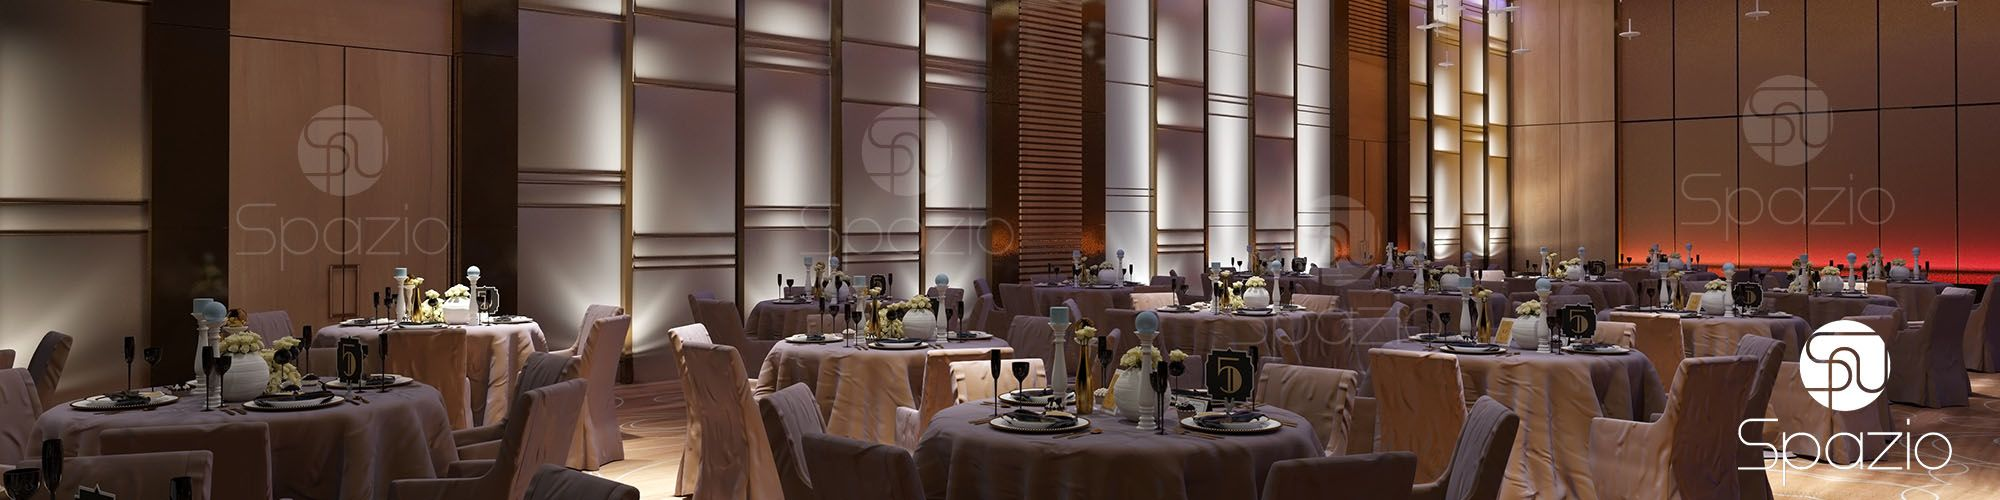 banquet hall from the best hotel designers of Spazio